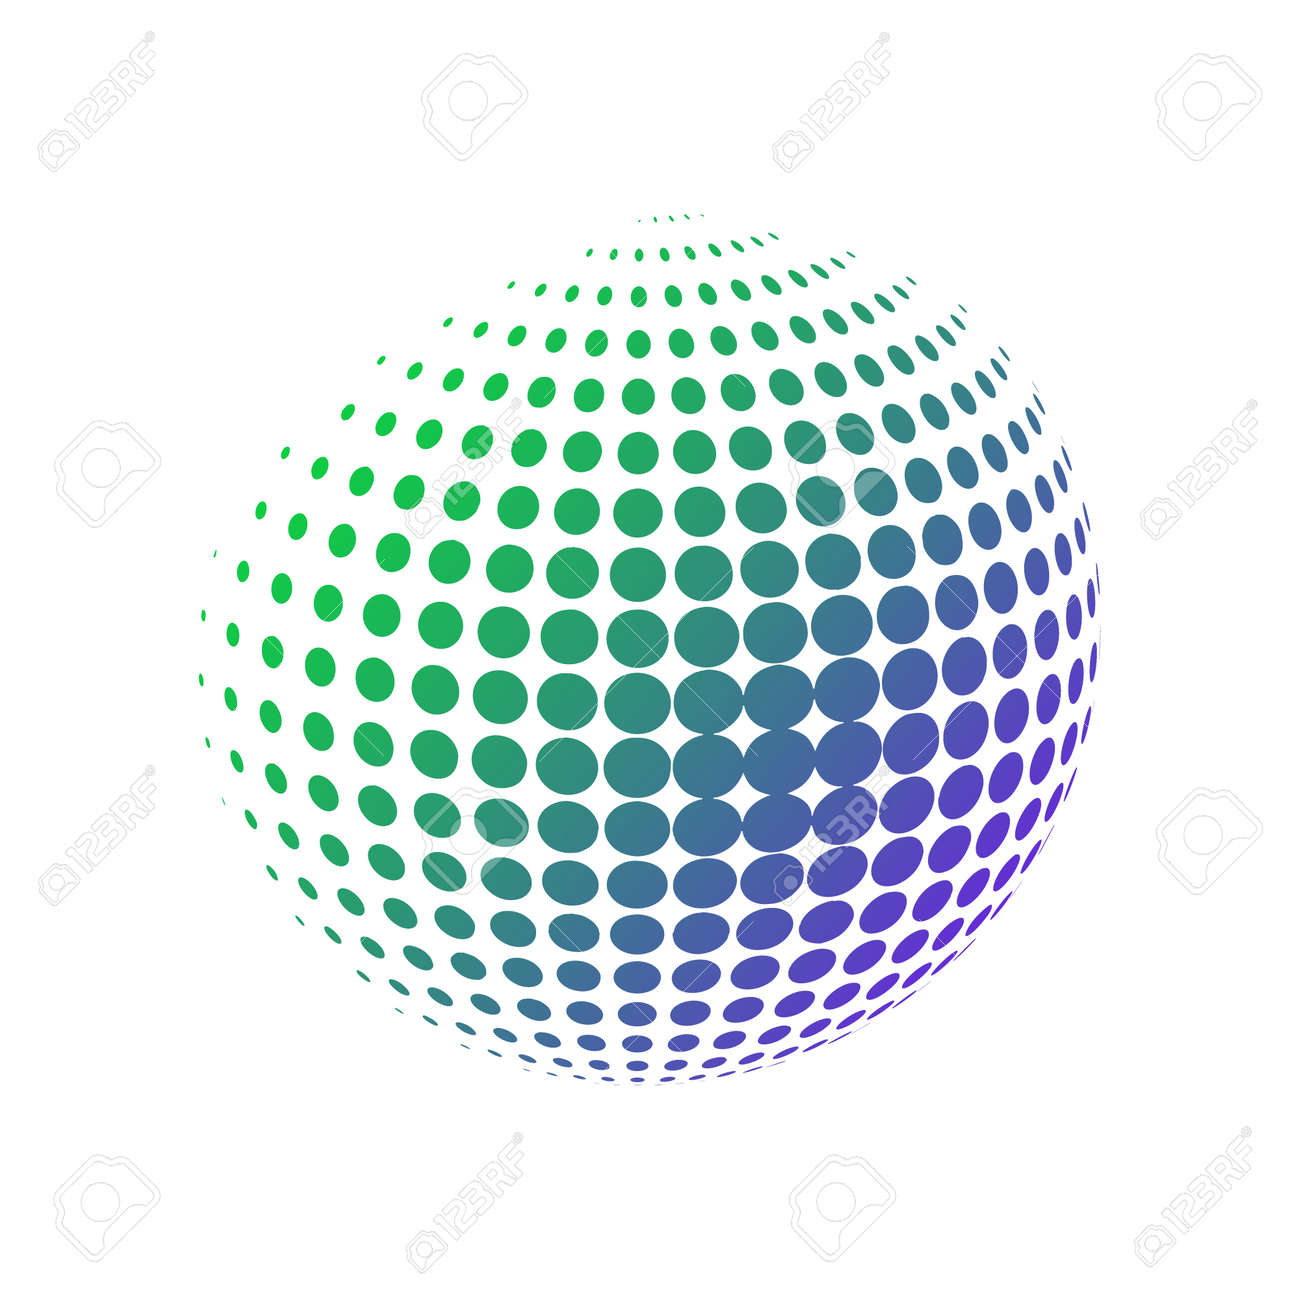 Geometric sphere made of dots with a gradient green blue colors. Halftone vector illustration. 3D ball in a modern minimalistic style - 158311101